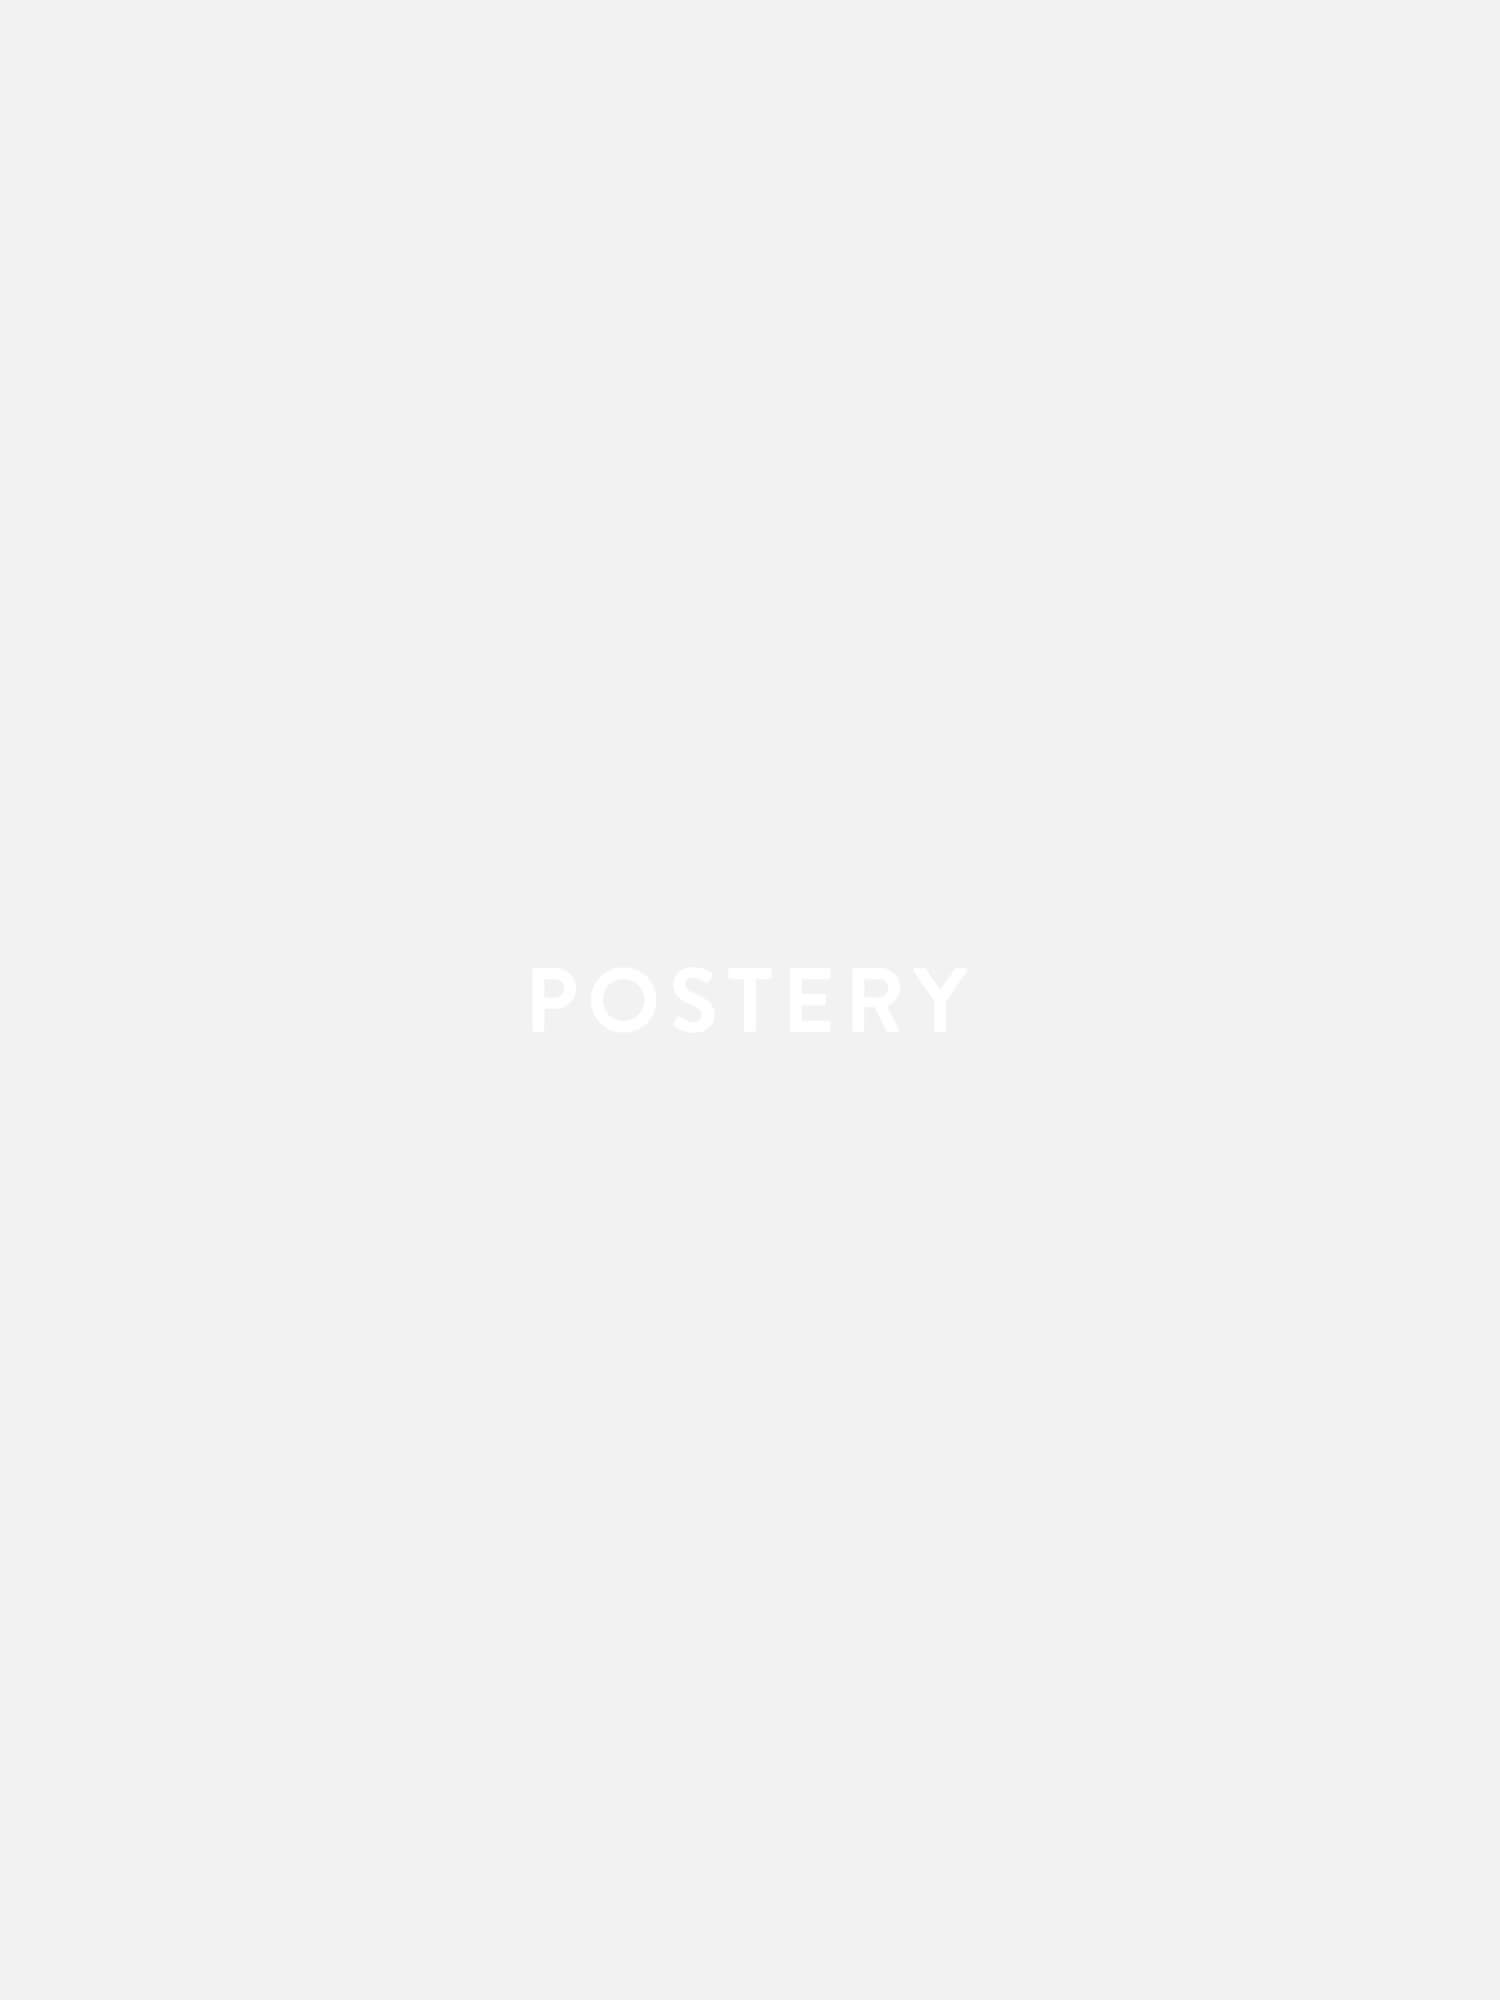 Pomegranate no.1 Poster